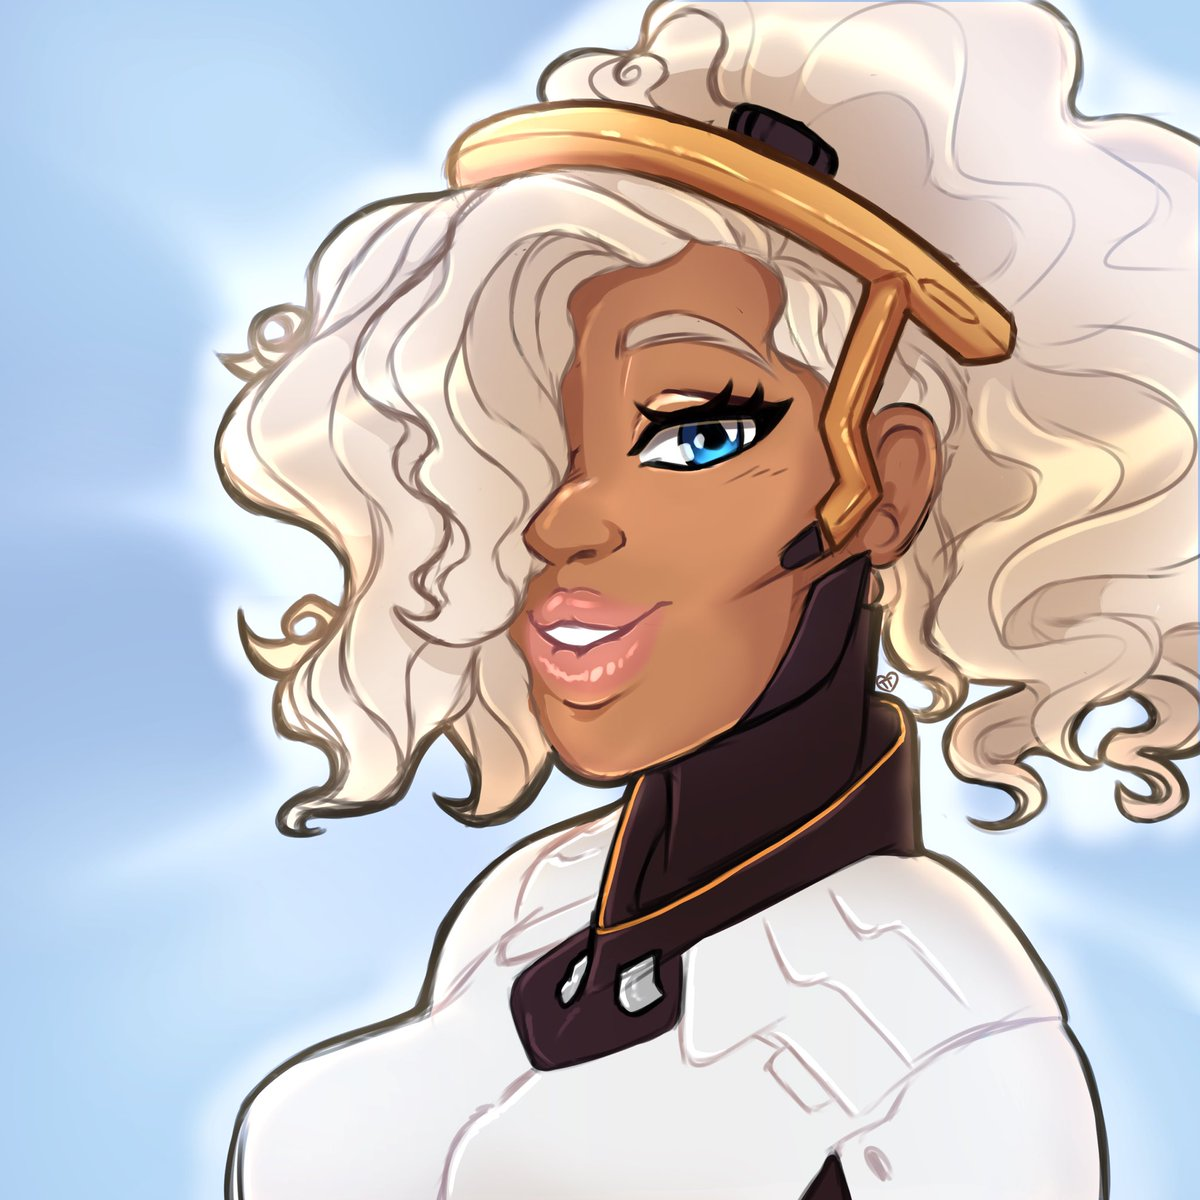 A true blessing if I've ever seen one. A quick colored sketch of @OtakuSkum ~! #godisawoman #Overwatch #curlycosplay<br>http://pic.twitter.com/1TeKZxCUVX